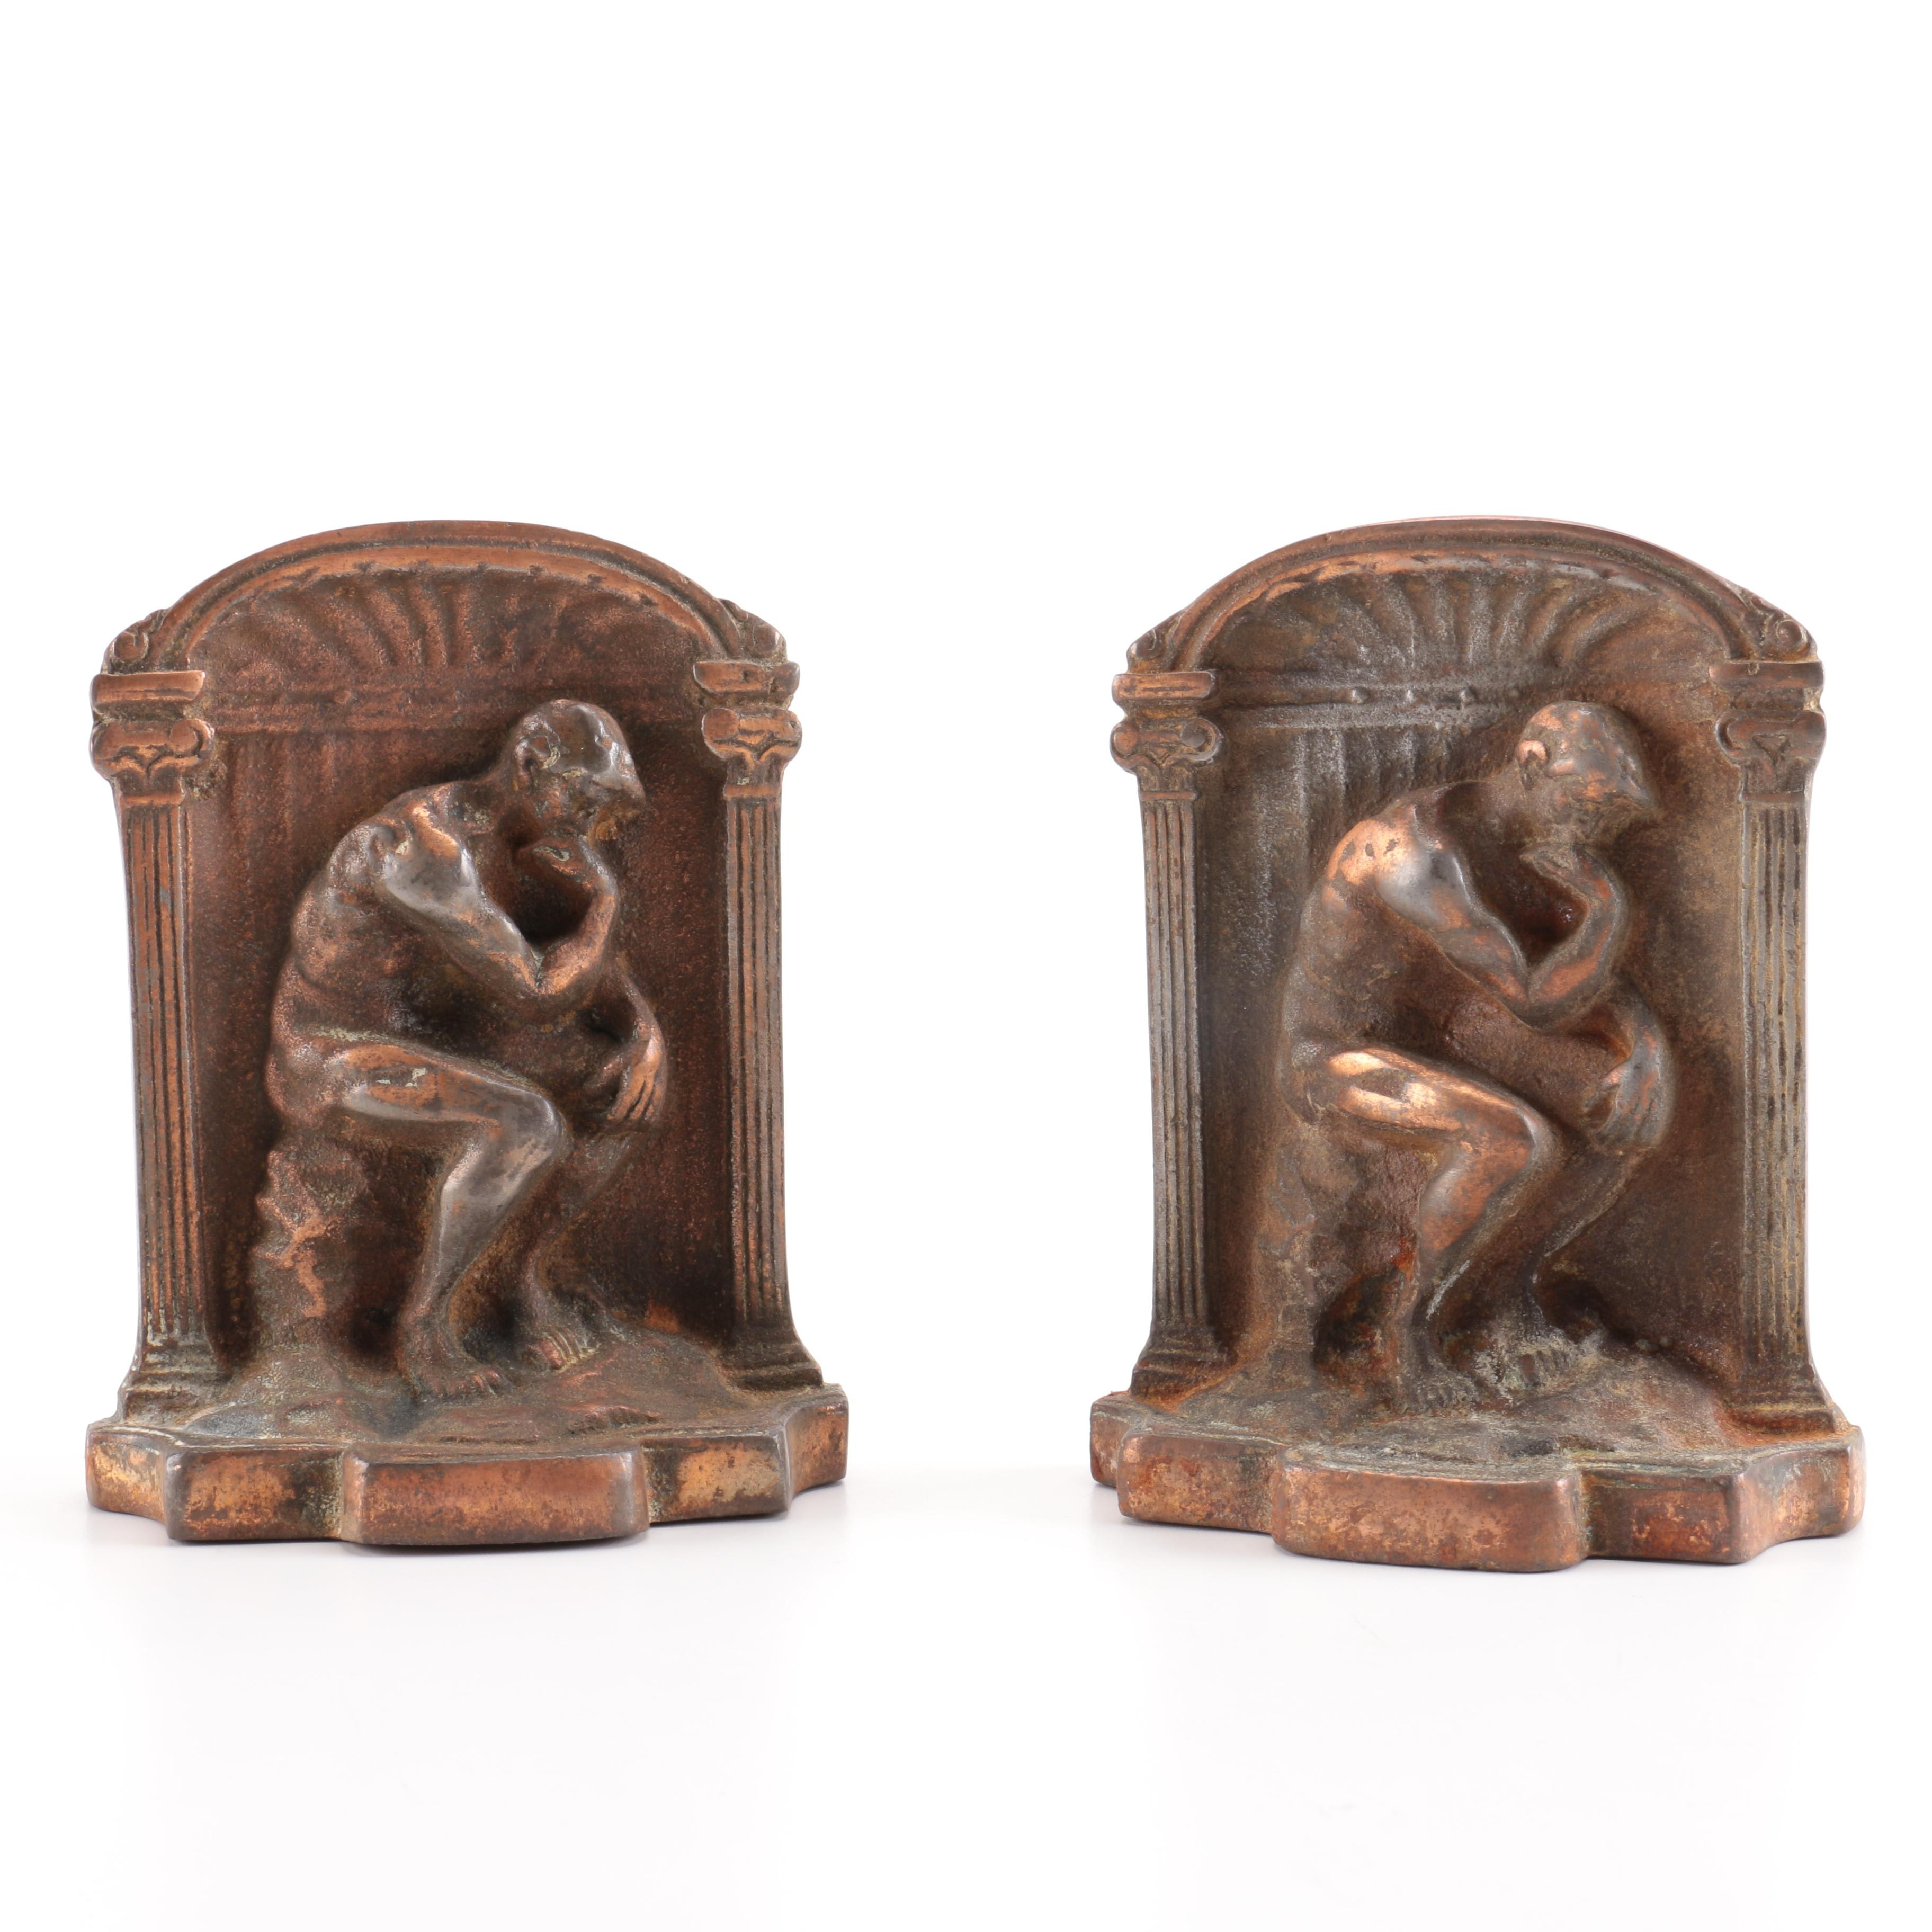 """Bronze Bookends With Relief After Rodin's Sculpture """"The Thinker"""""""